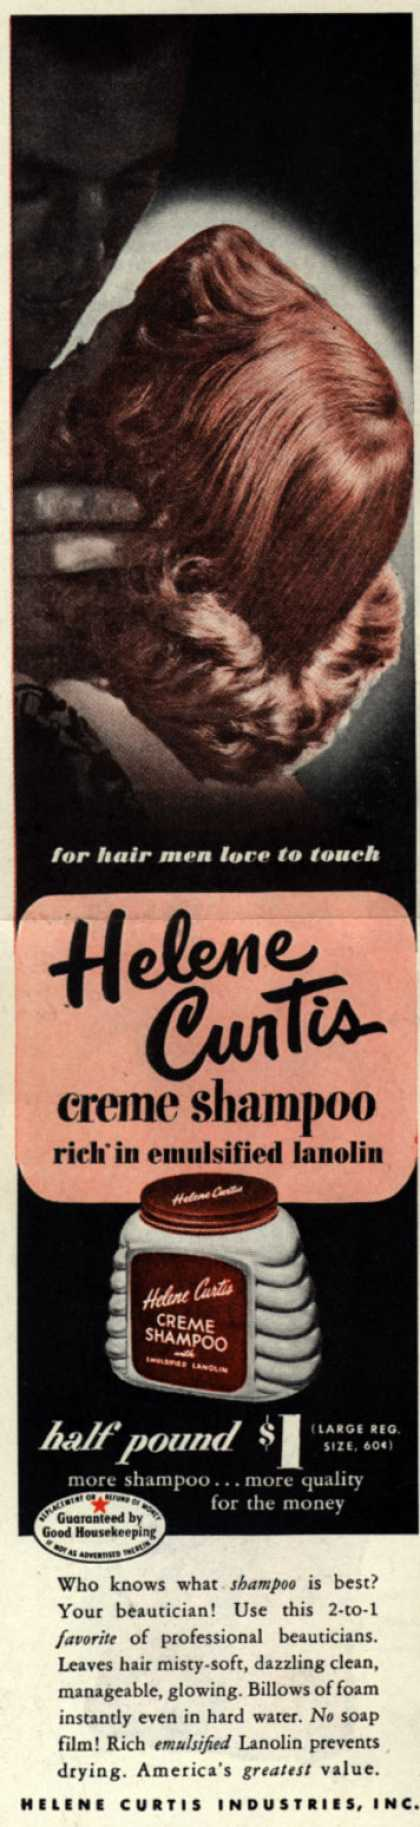 Helene Curtis Industries Incorporated's Helene Curtis creme shampoo – For hair men love to touch, Helene Curtis creme shampoo rich in emulsified lanolin (1949)